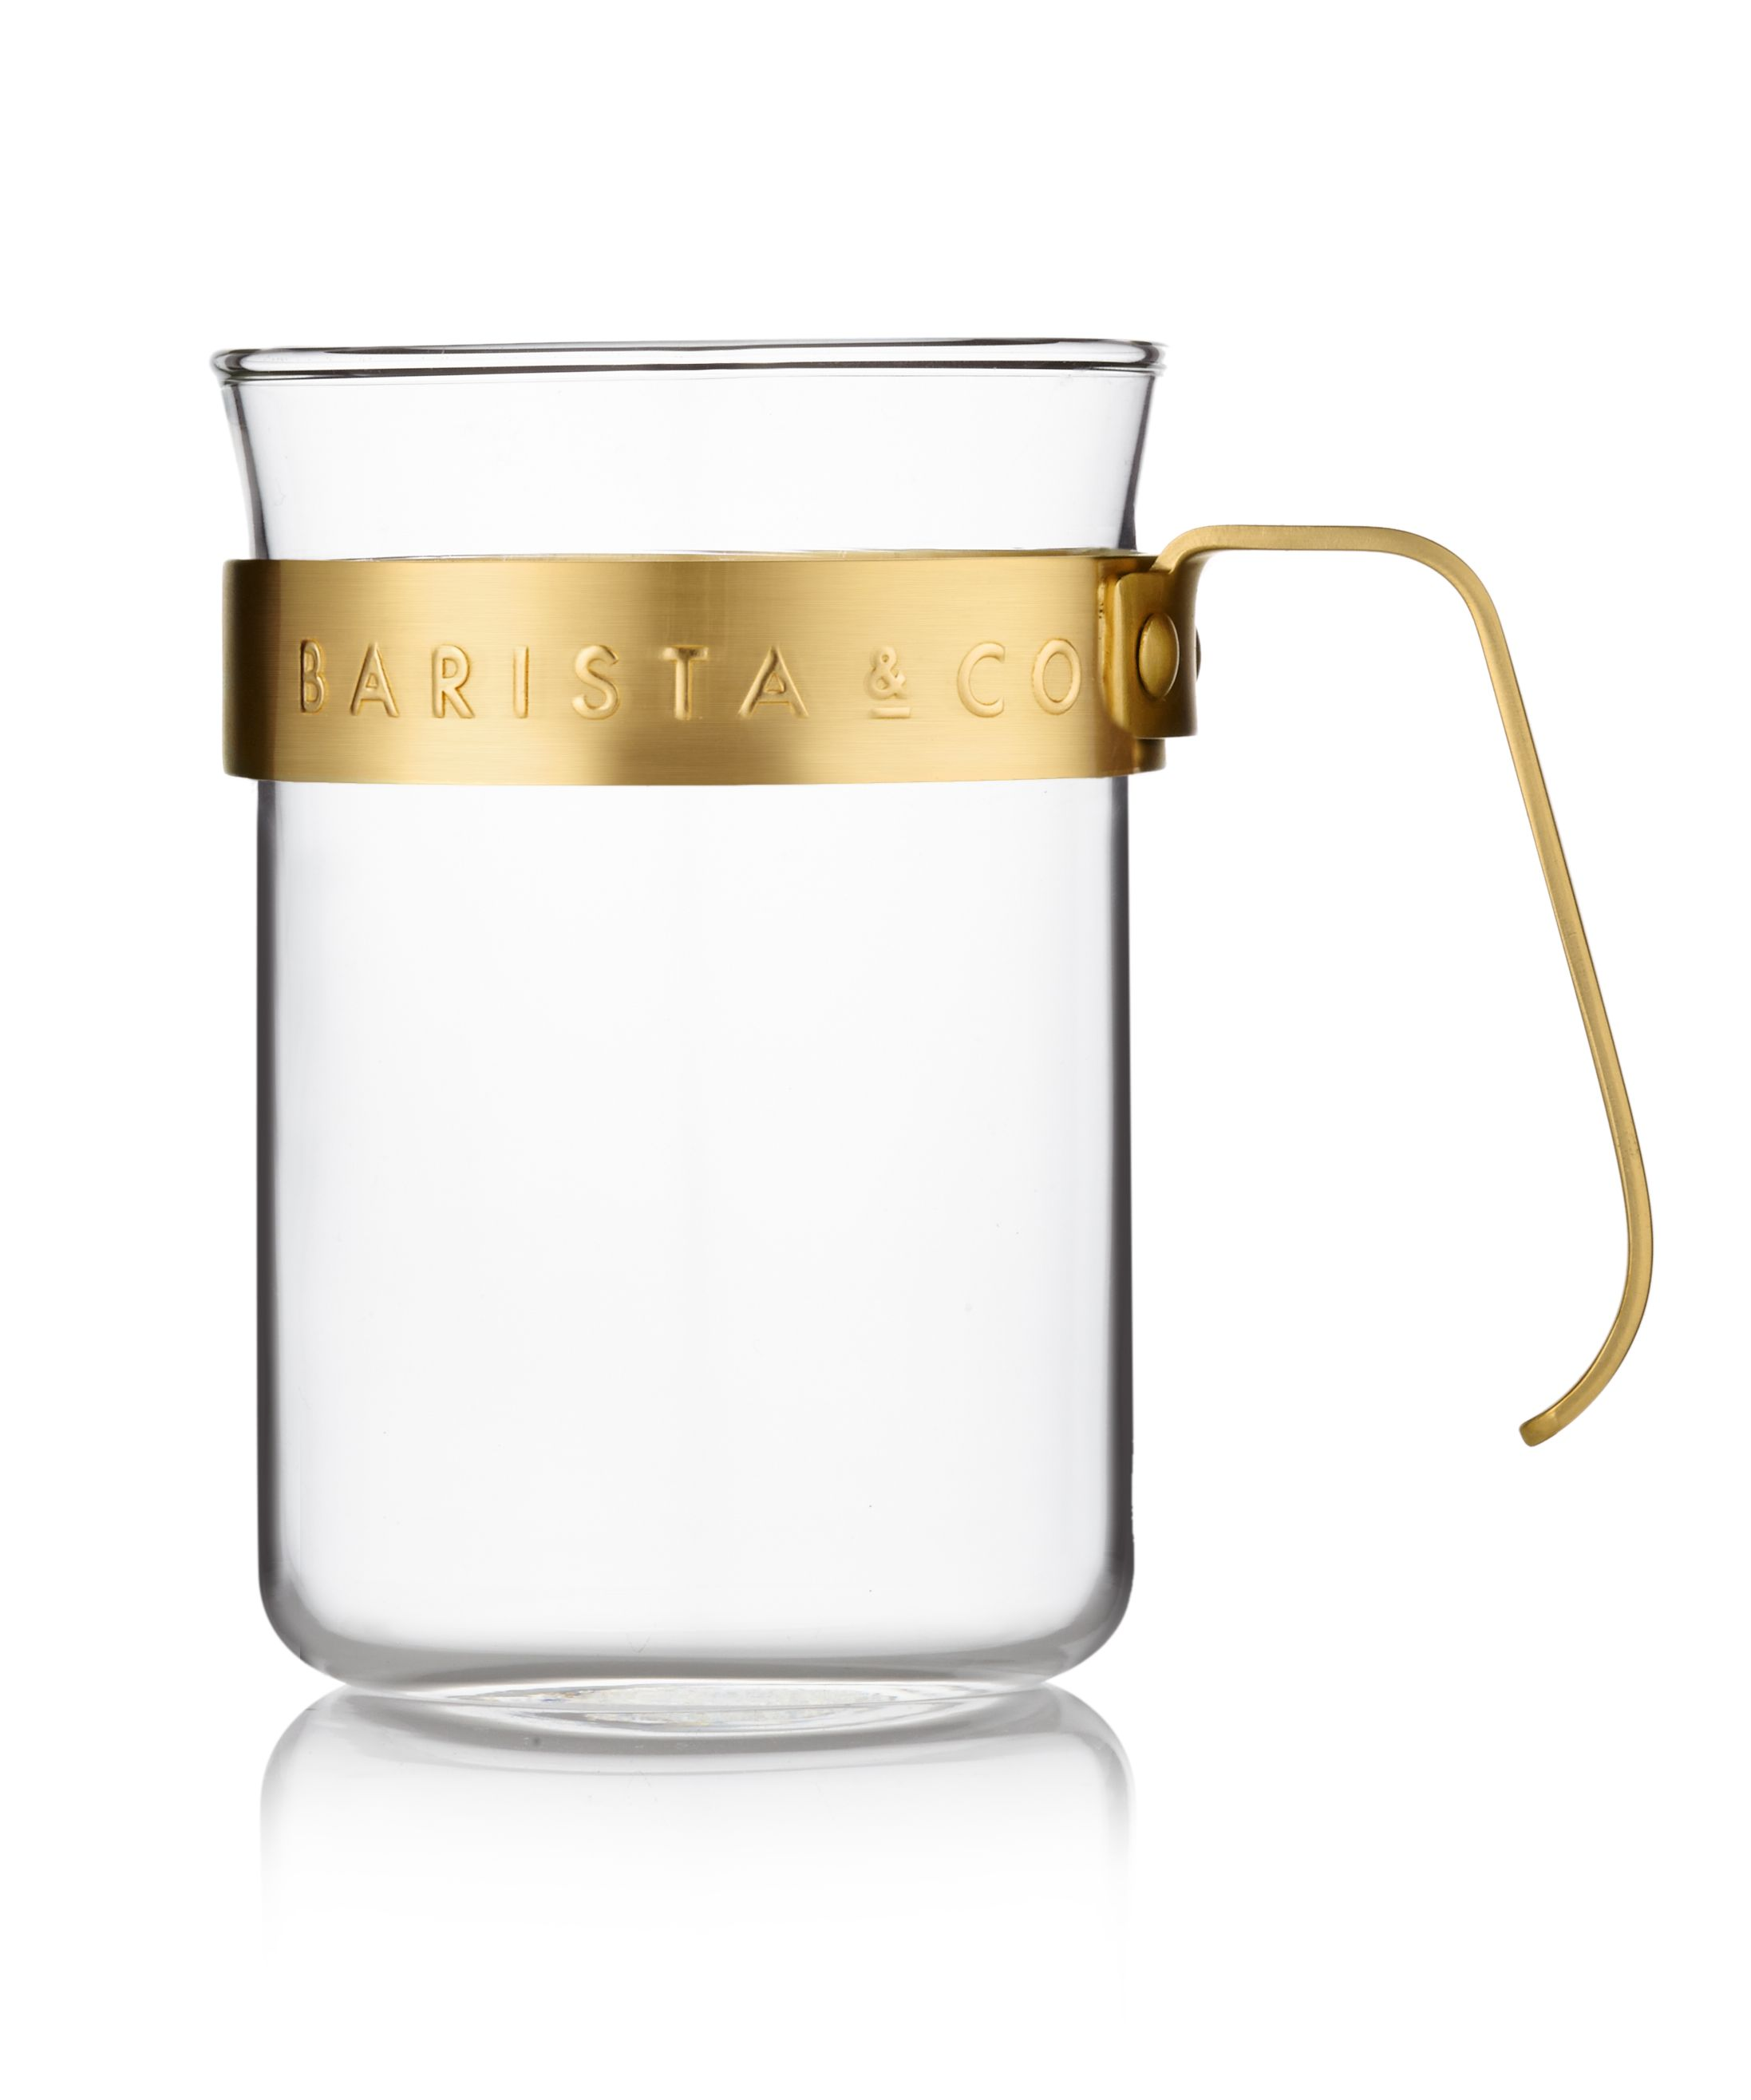 Image of Barista & Co Set of 2 Metal Frame Glass Cups, Midnight Gold, Gold